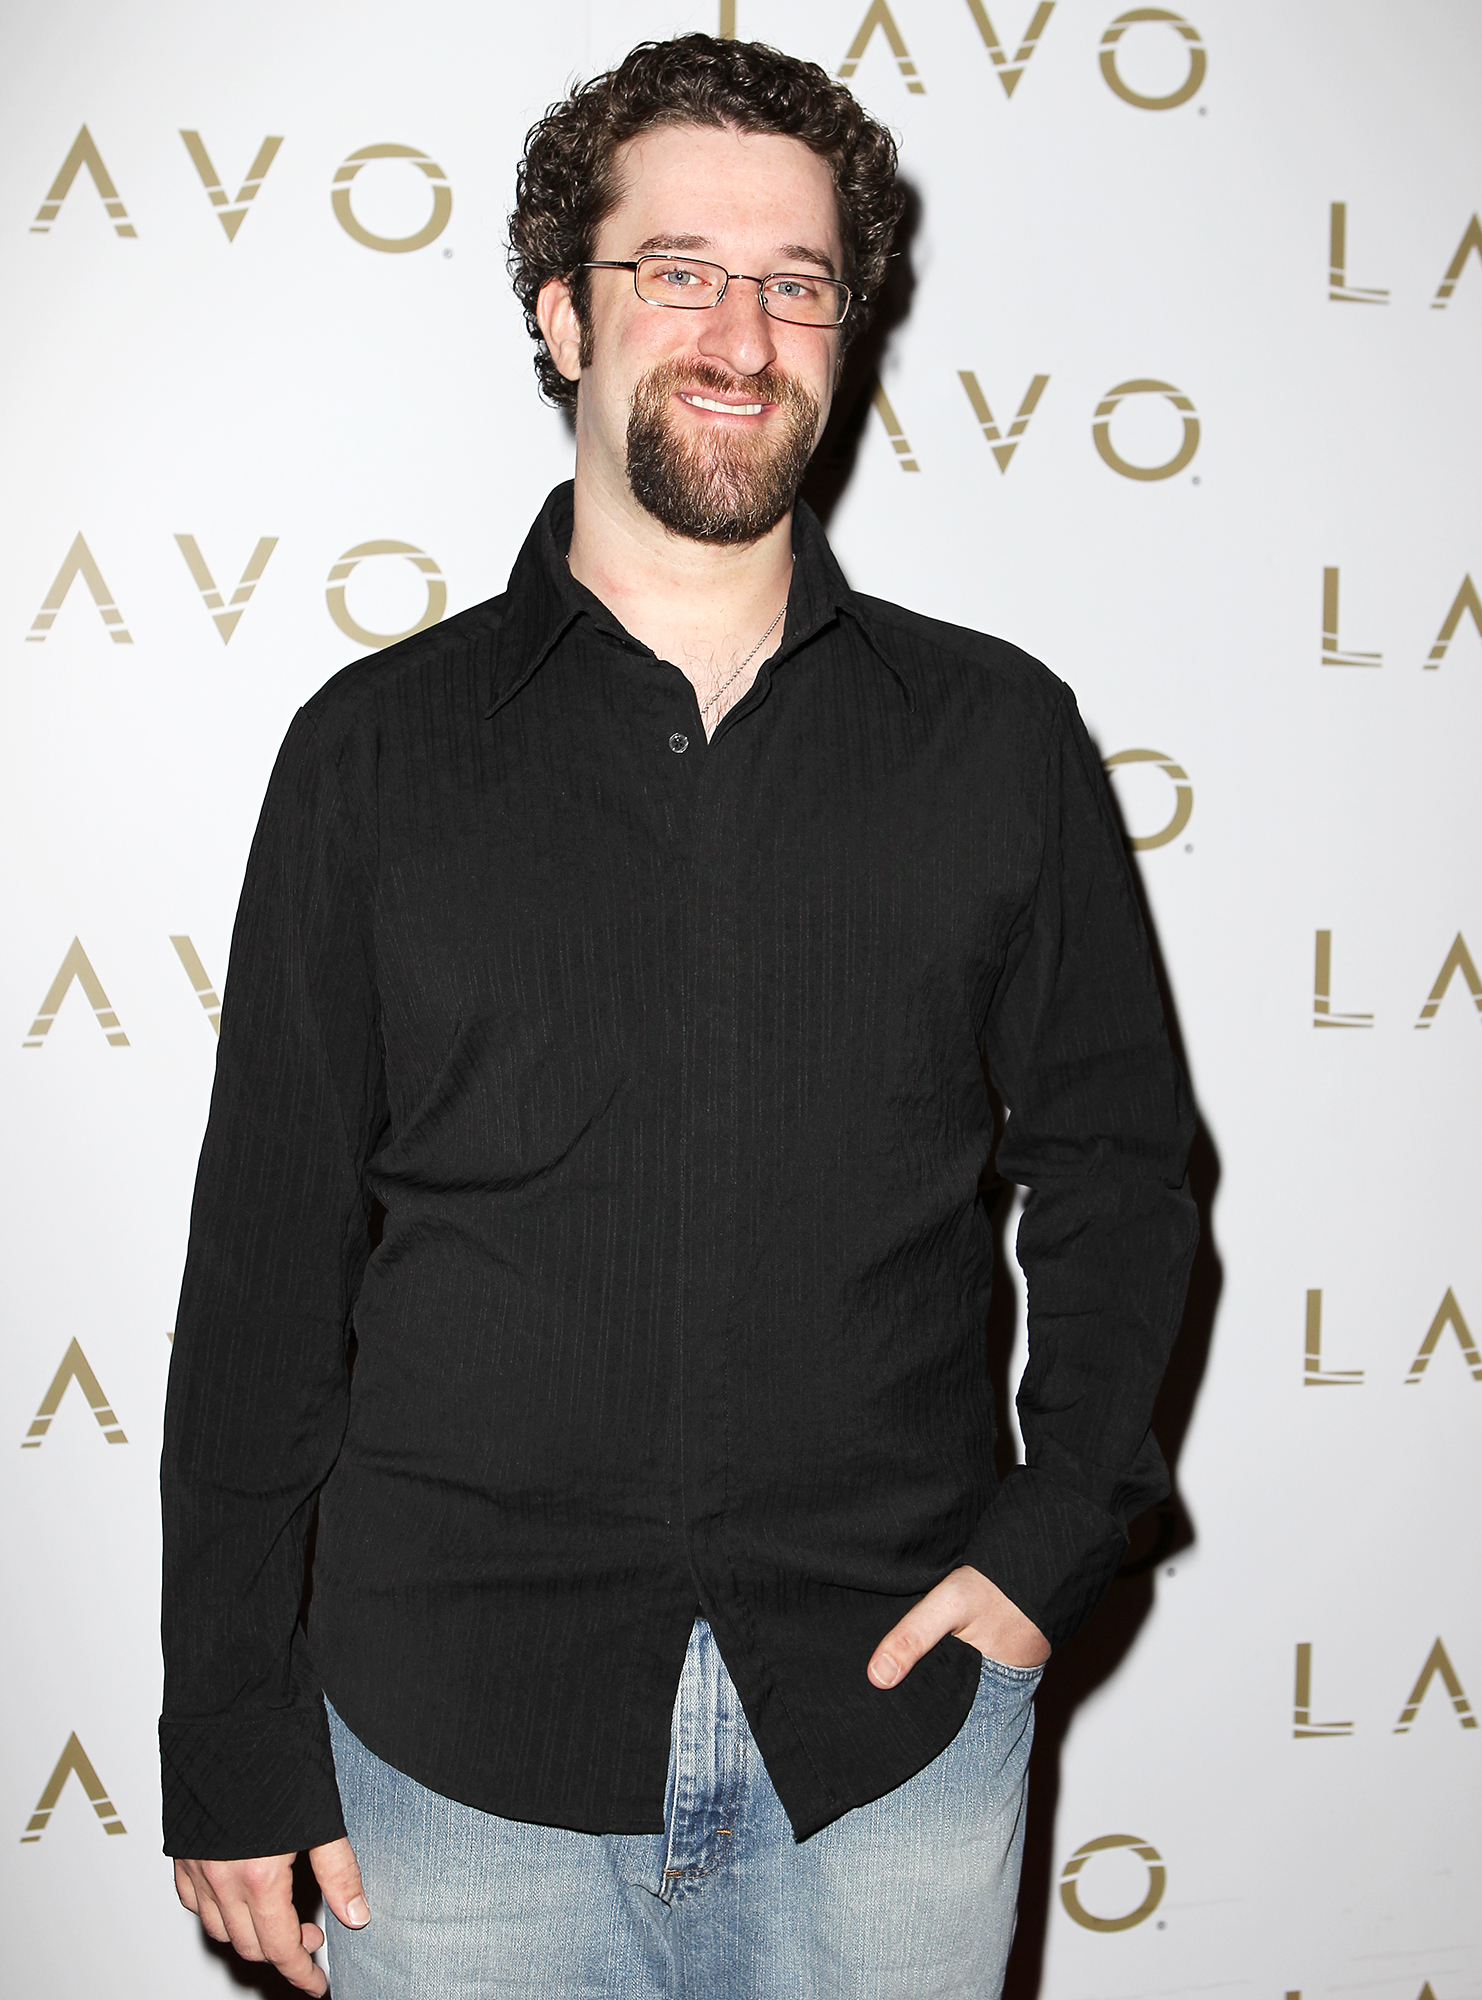 Saved by the Bell's Dustin Diamond Confirms He Has Cancer